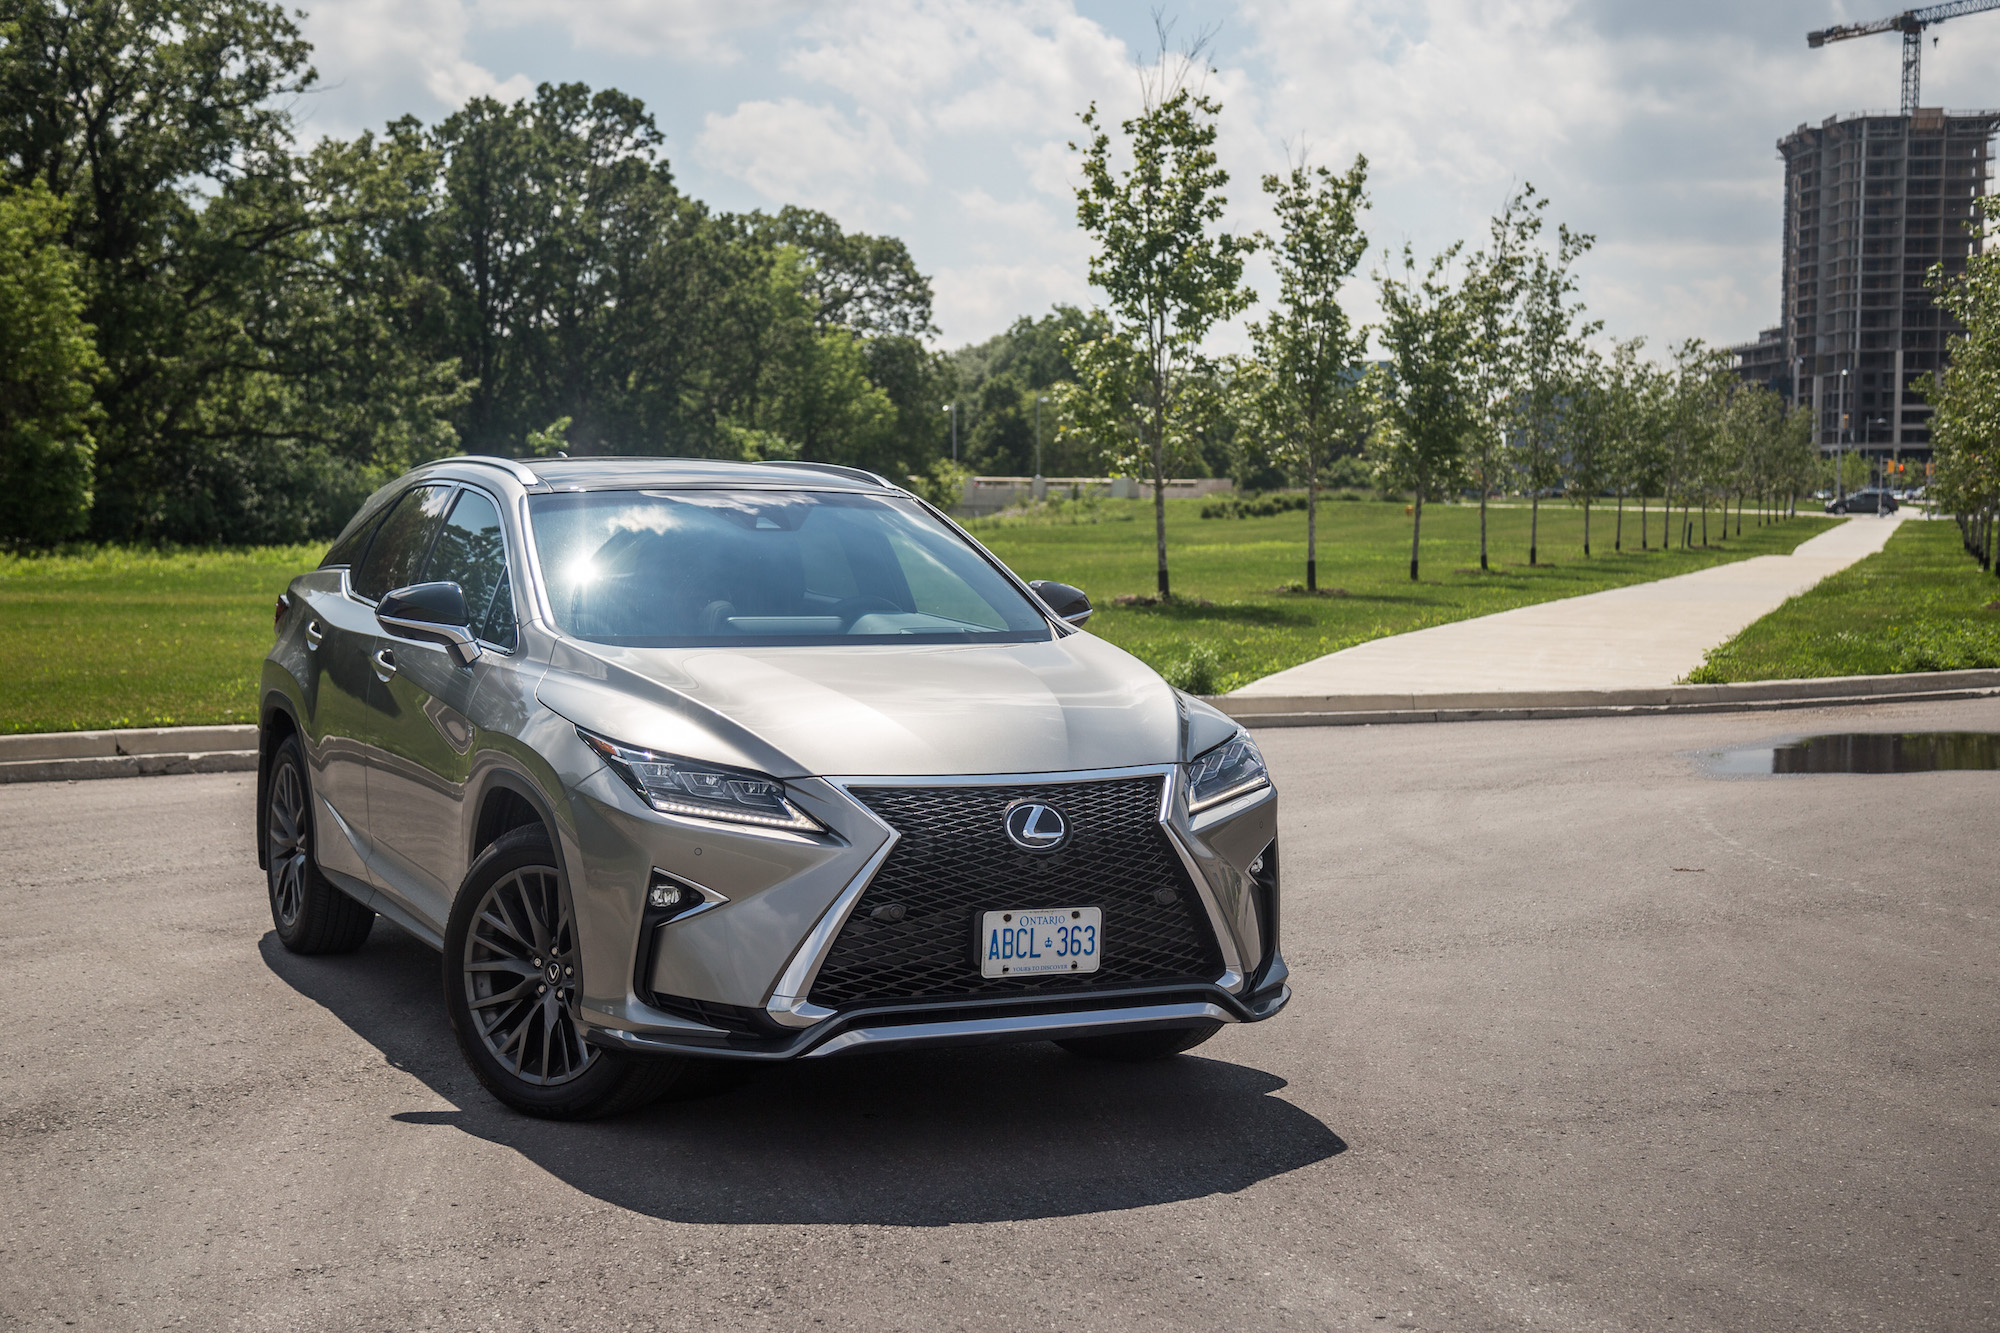 the to but there has been test sport created rx by lexus gallery news luxury i a than fsport road awd after suv about saying f was successful story more carcostcanada start this never